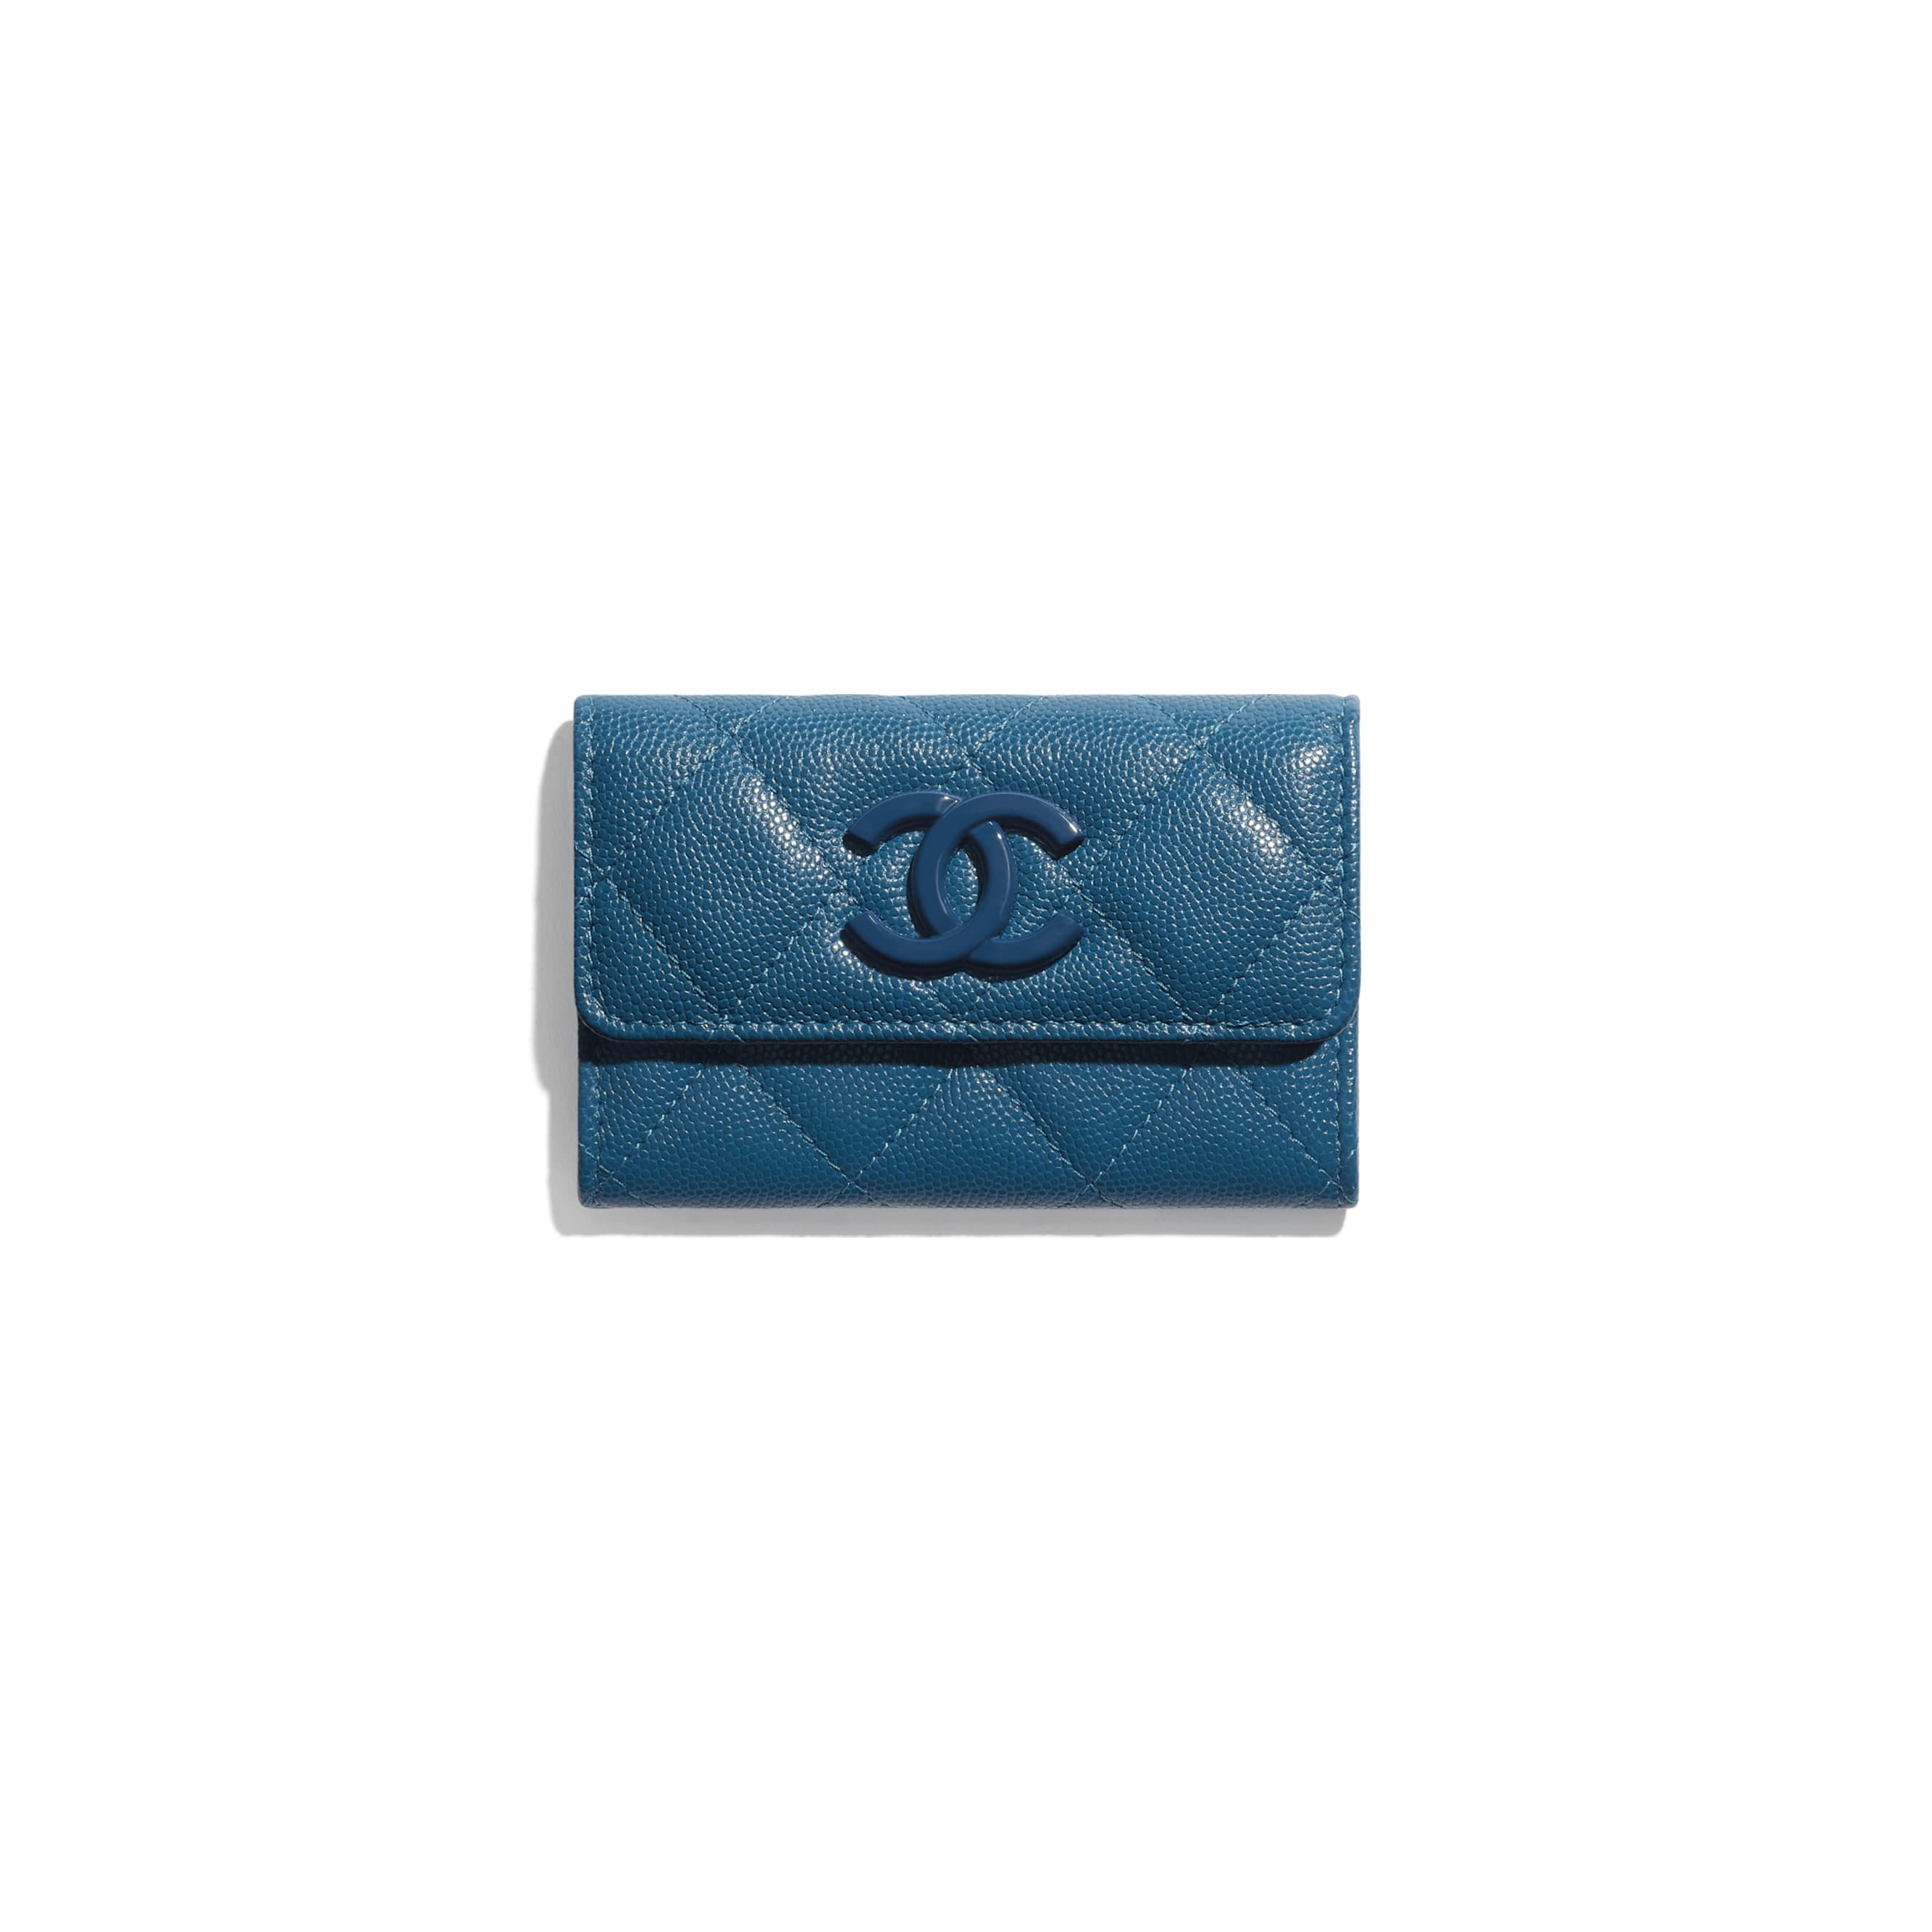 Flap Card Holder - Navy Blue - Grained Calfskin & Lacquered Metal - CHANEL - Default view - see standard sized version